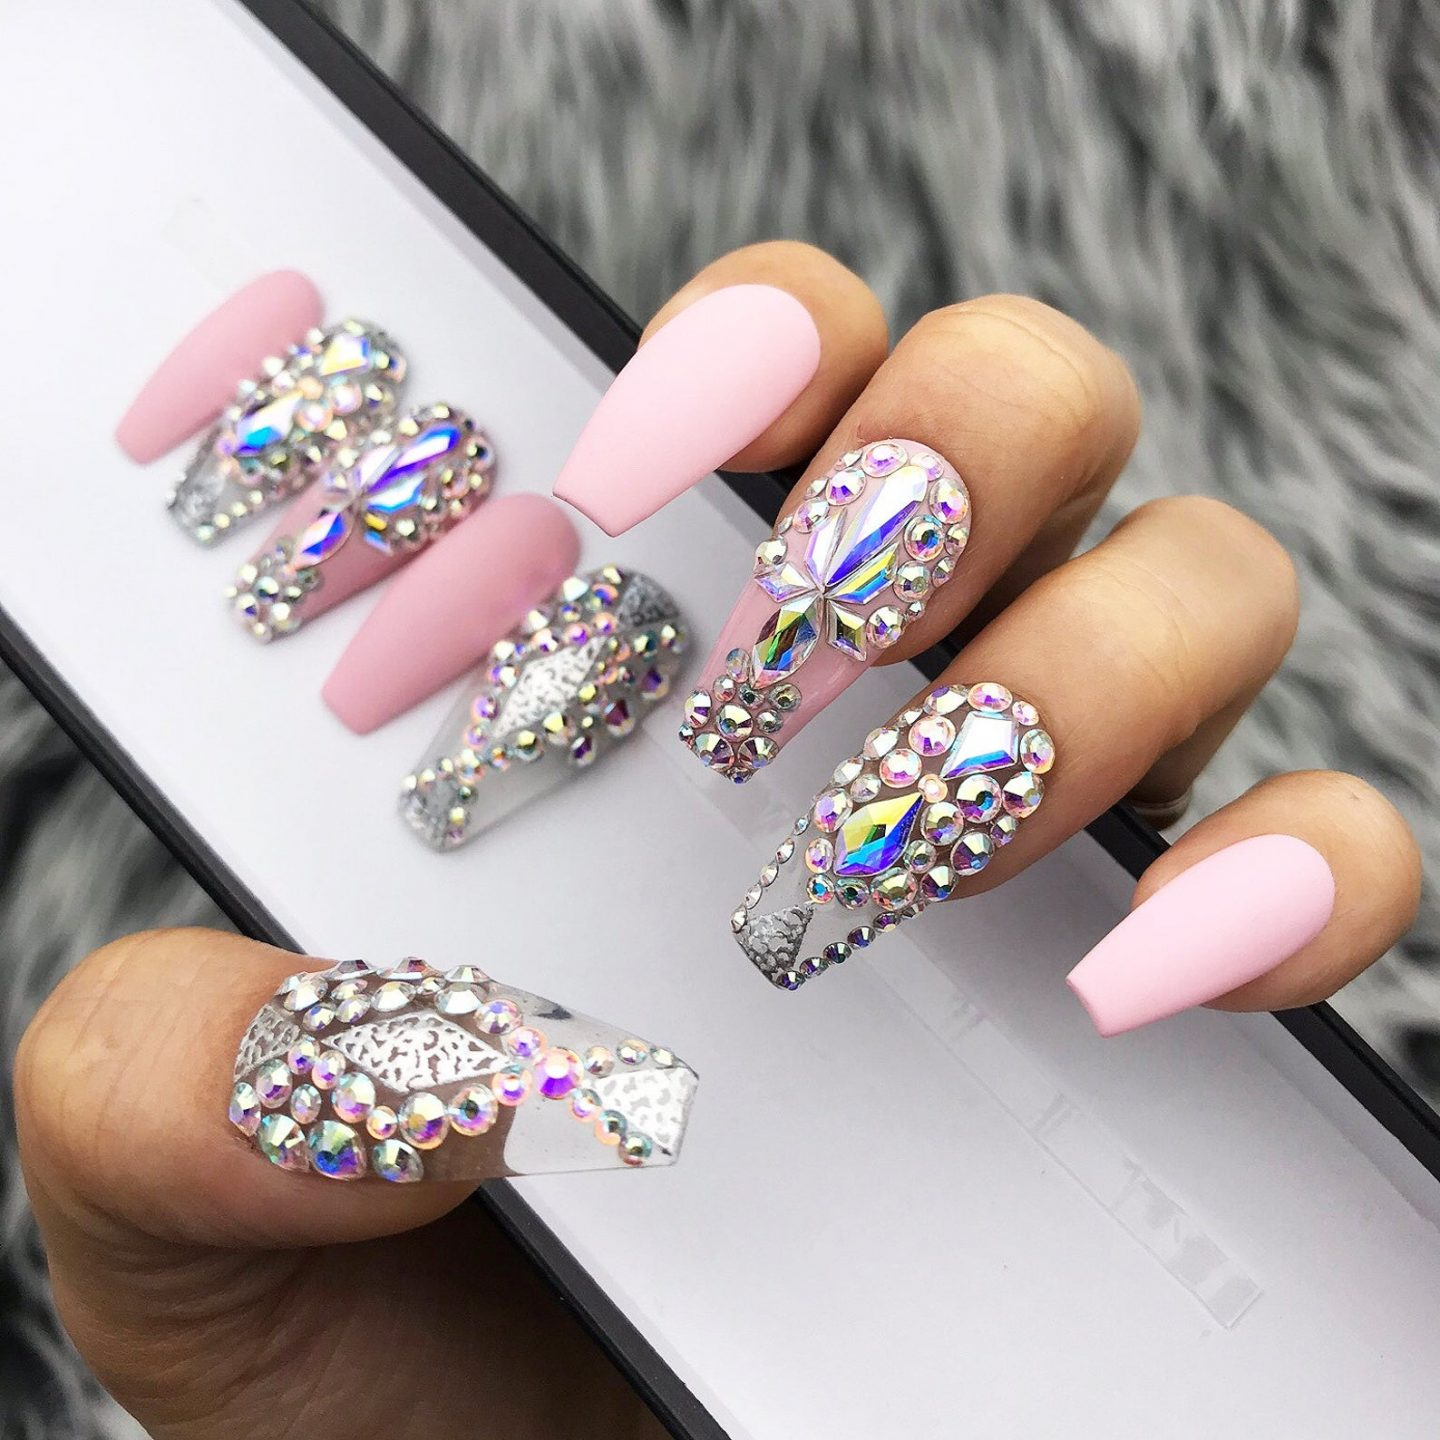 Matte light pink coffin nails with rhinestones